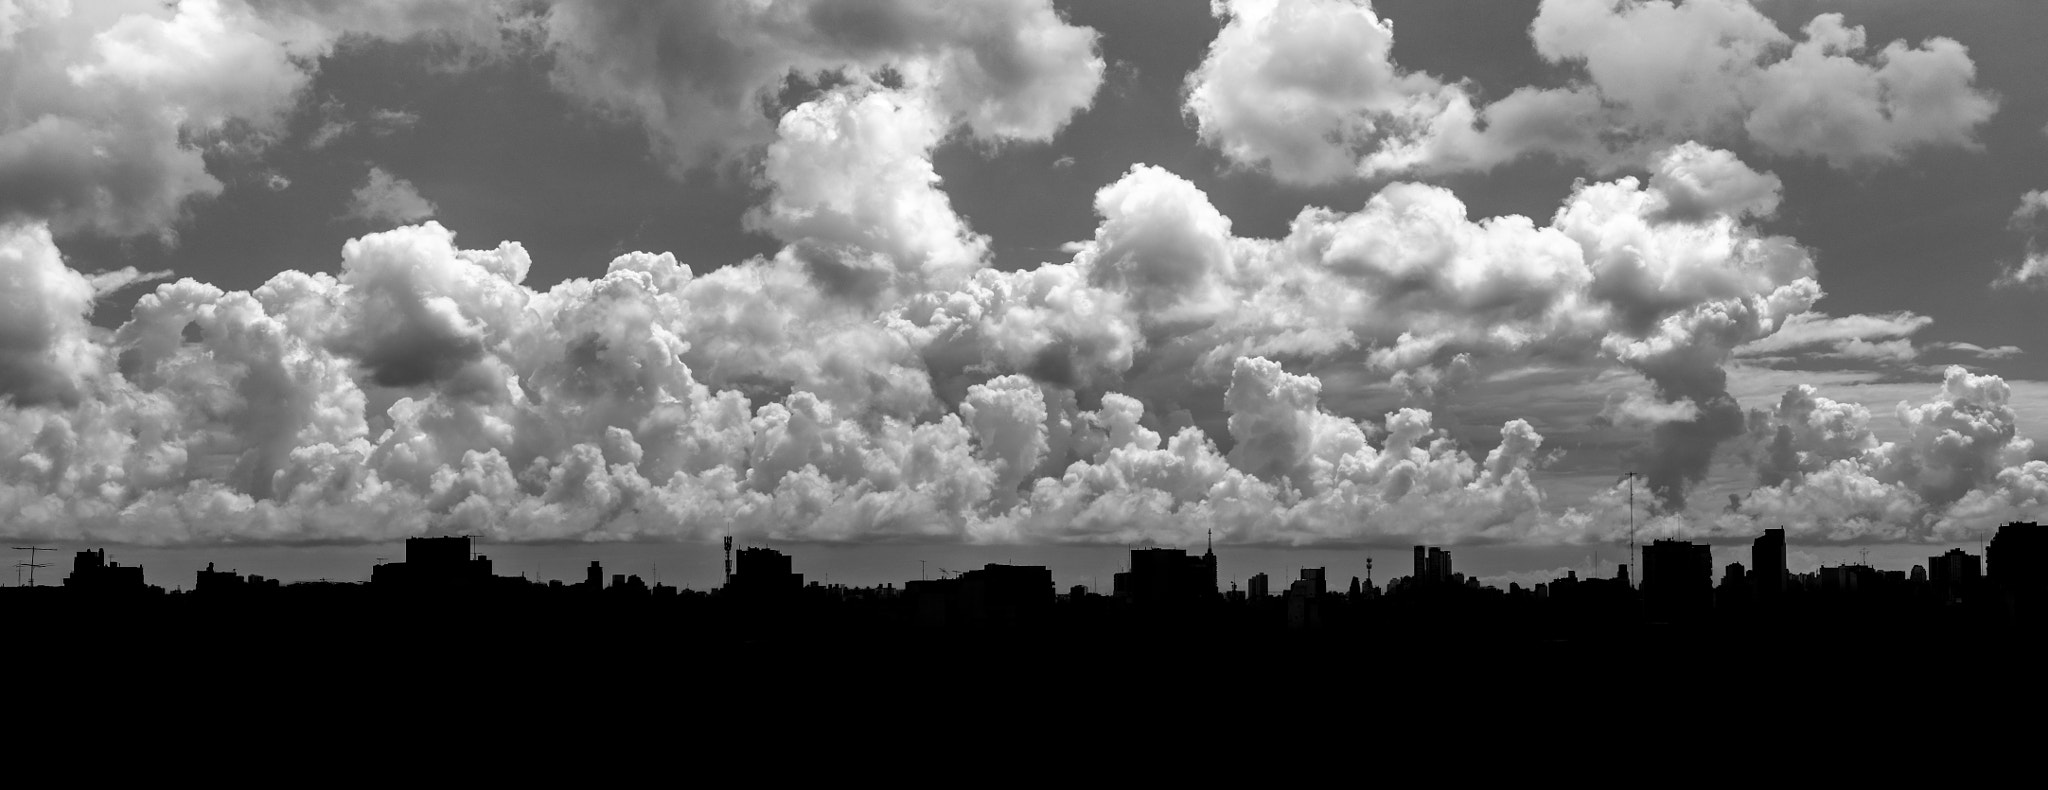 Photograph Buenos Aires Skyline with stormy weather by Martin Balo on 500px